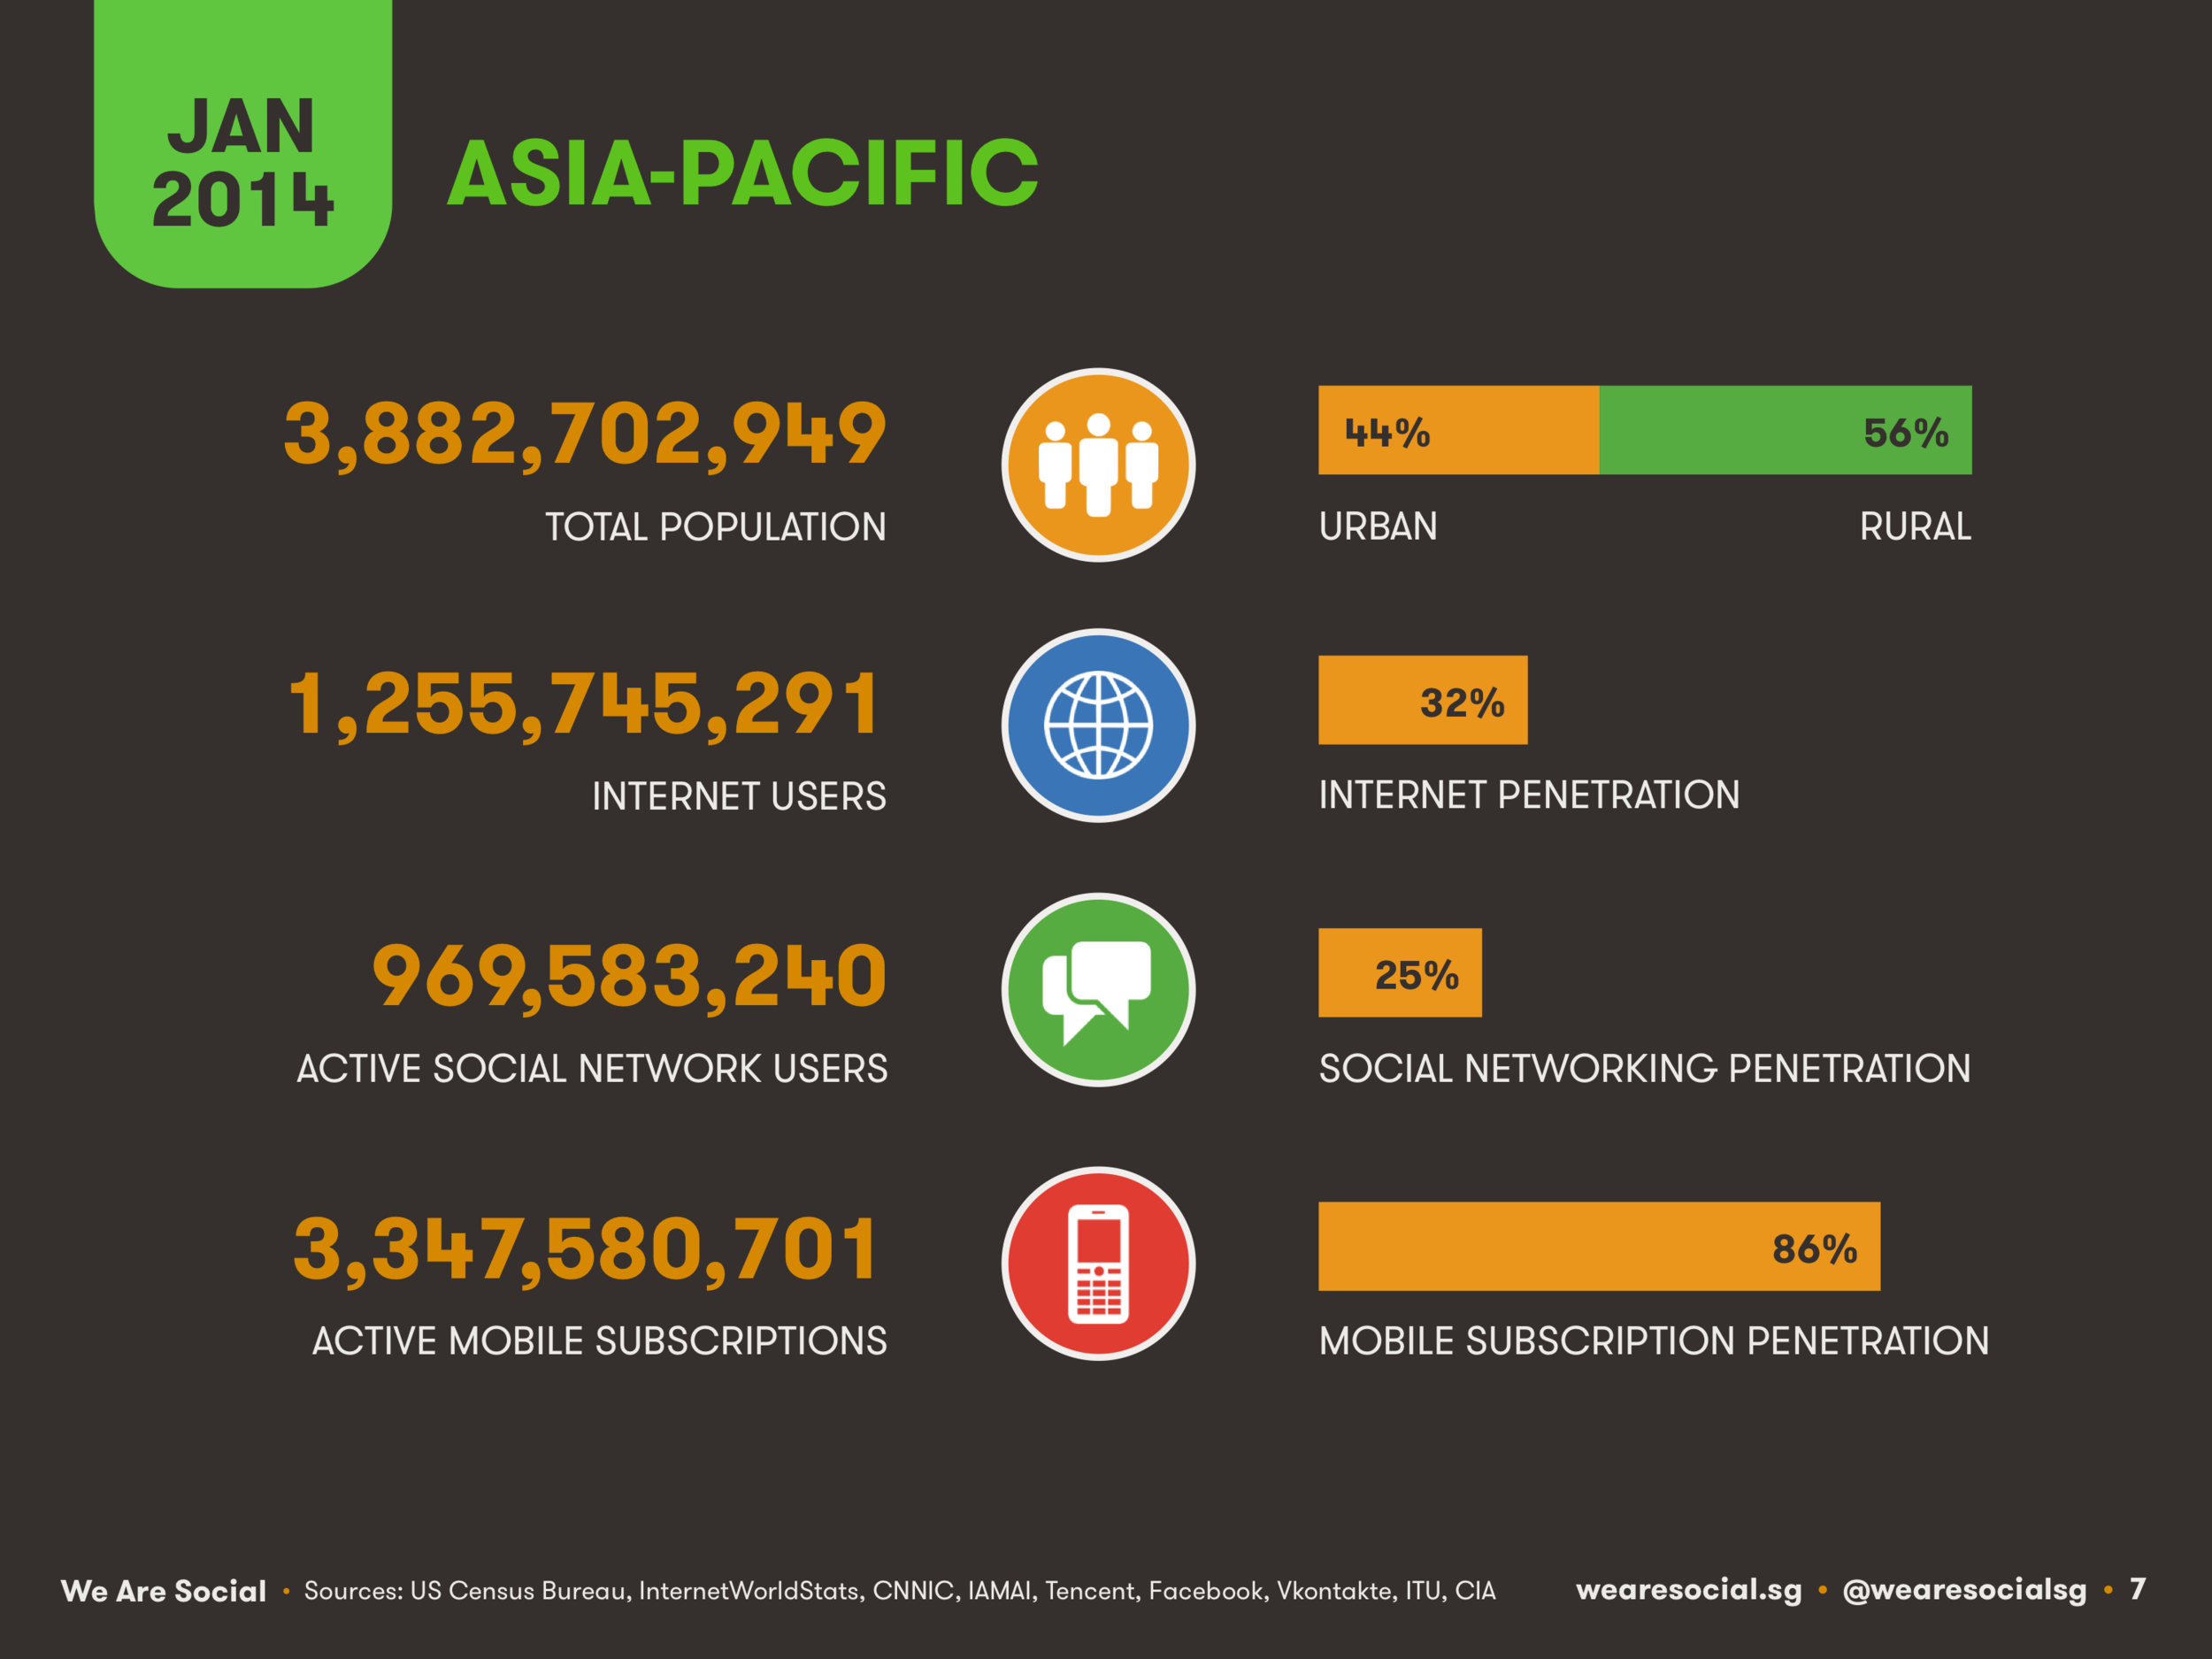 Digital in APAC January 2014 DataReportal